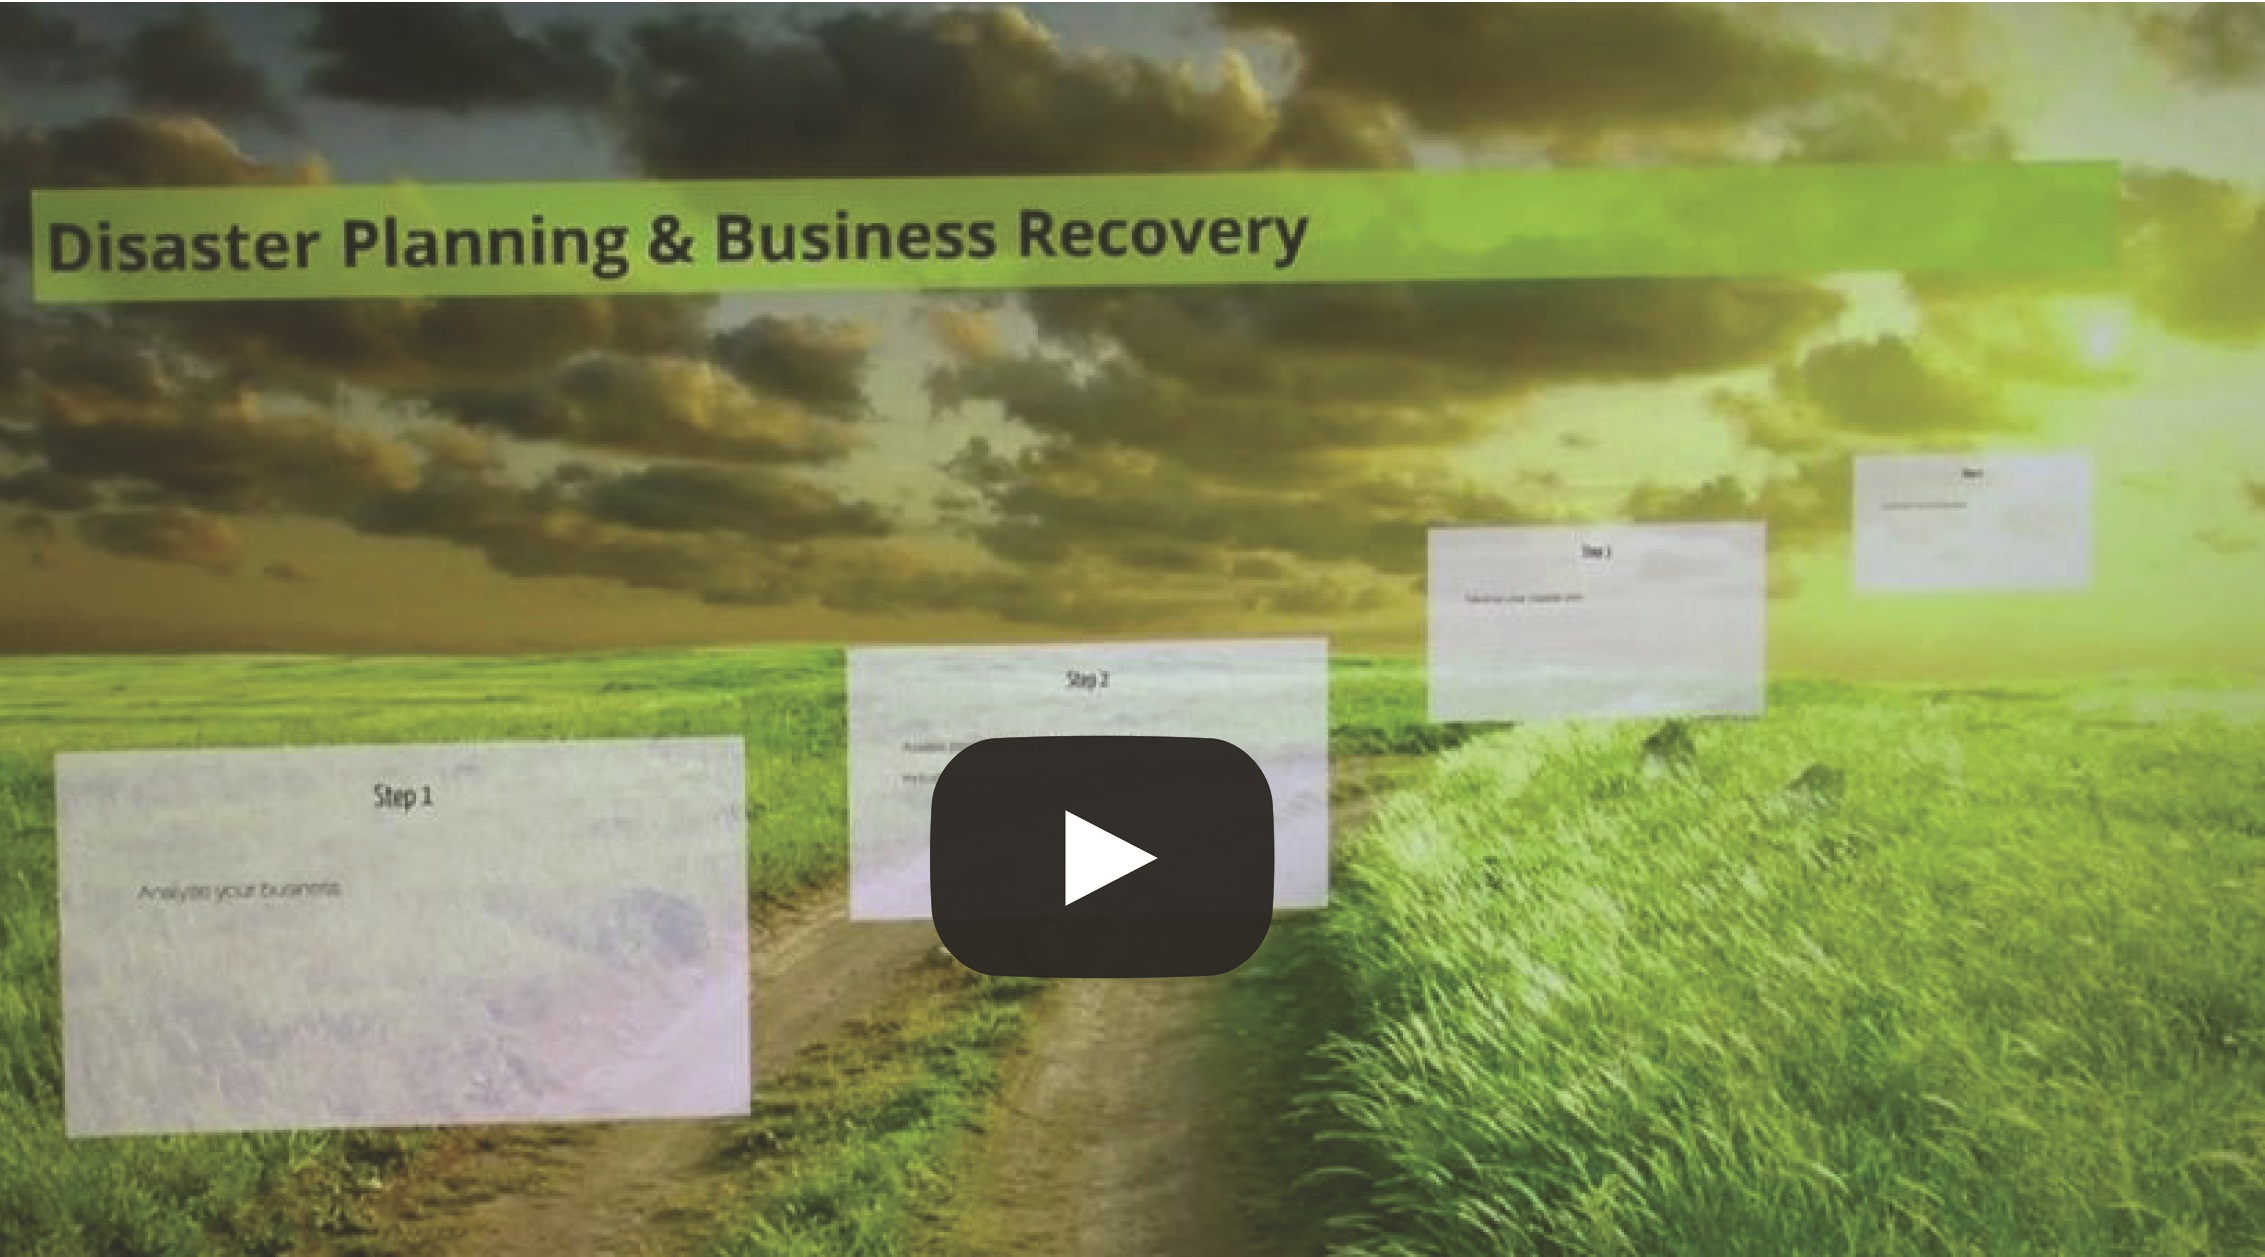 Disaster Planning & Business Recover